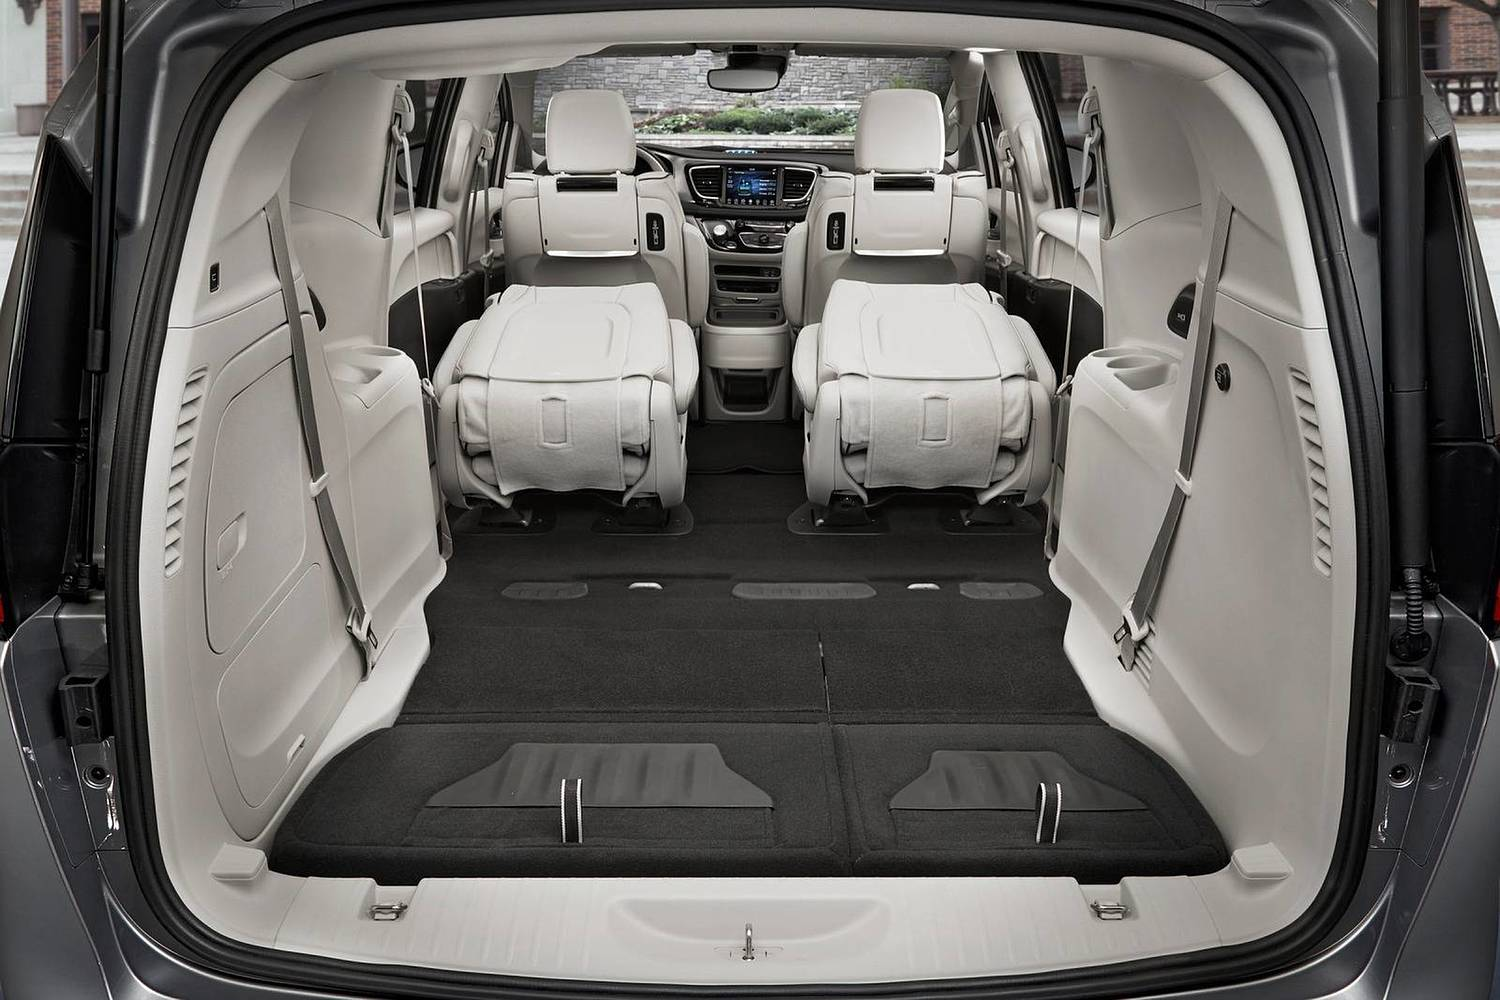 2018 Chrysler Pacifica Hybrid Touring Plus Passenger Minivan Rear Seats Down Shown